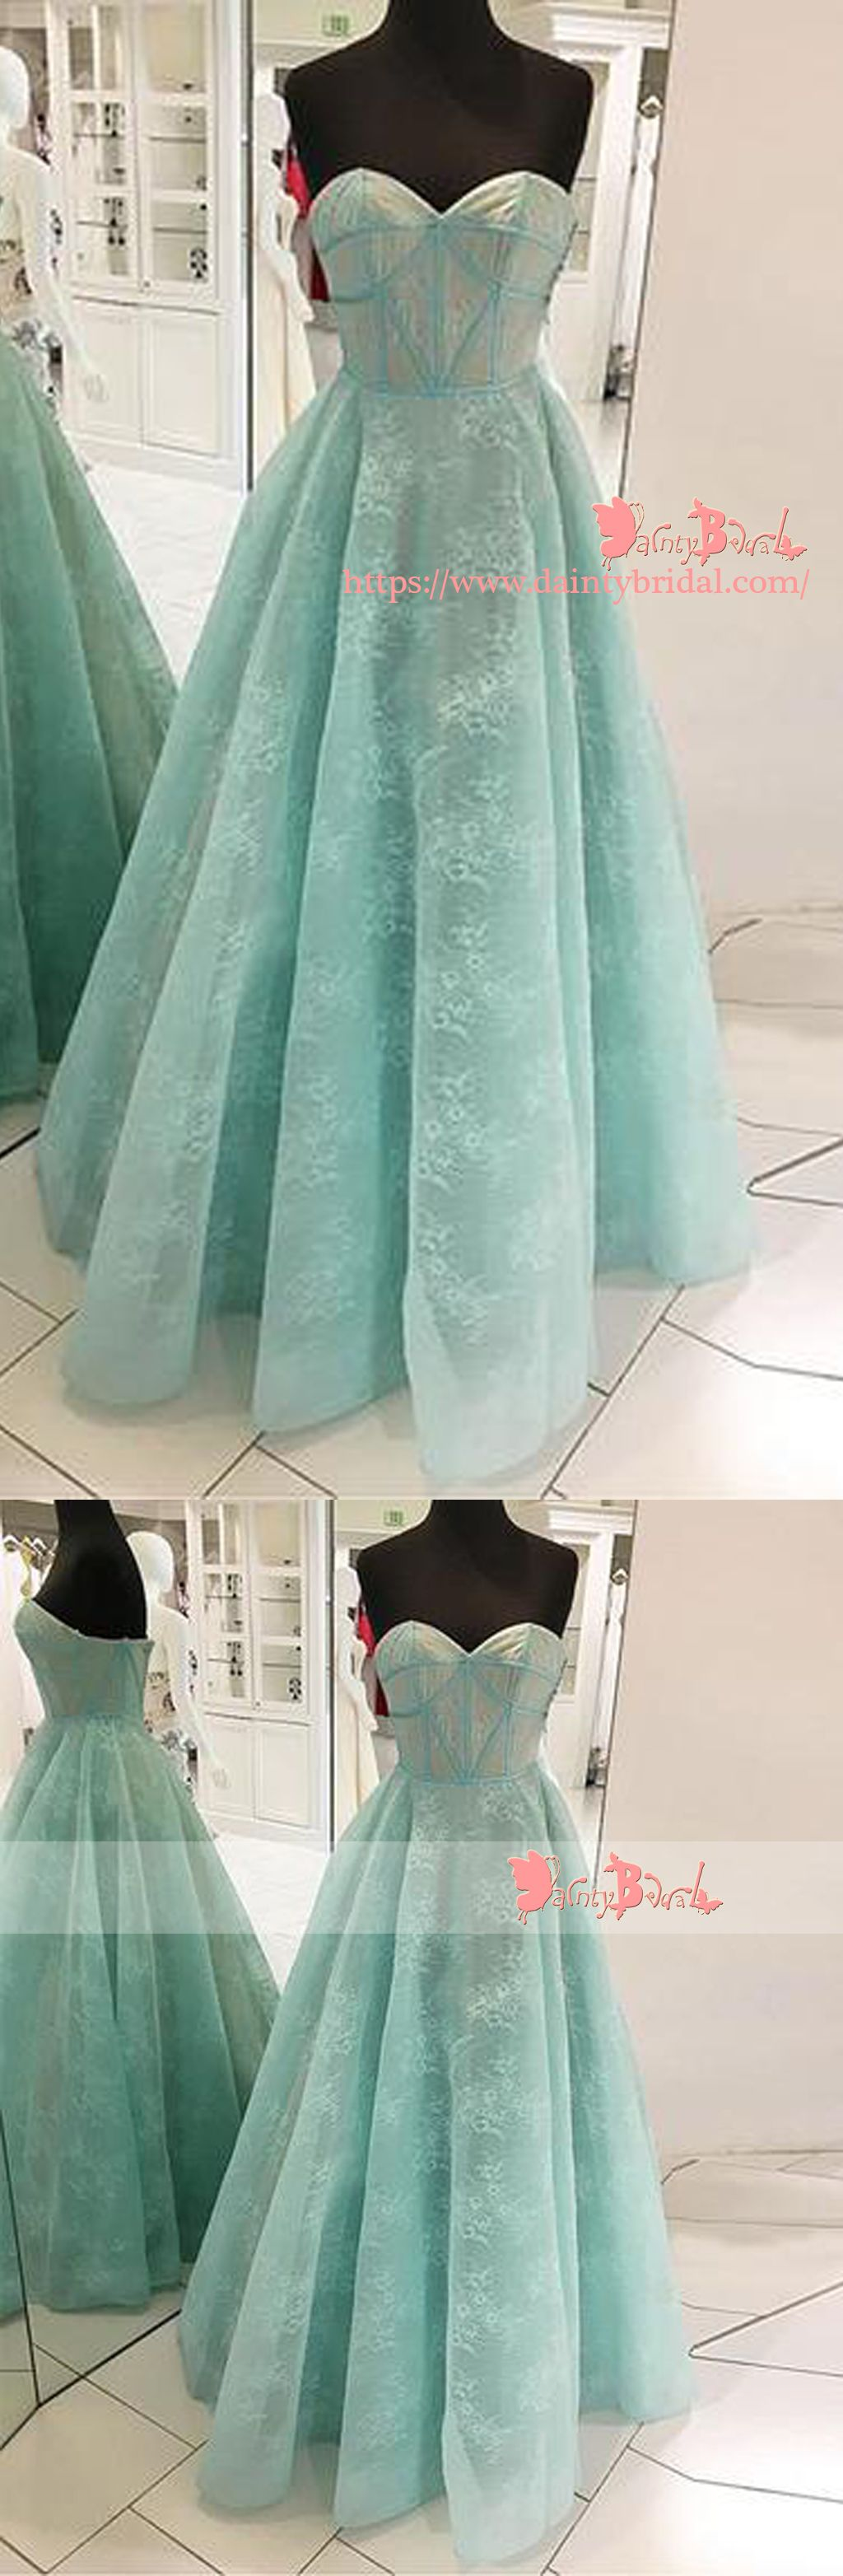 Fashion tiffany blue lace sweetheart strapless ball gown elegant